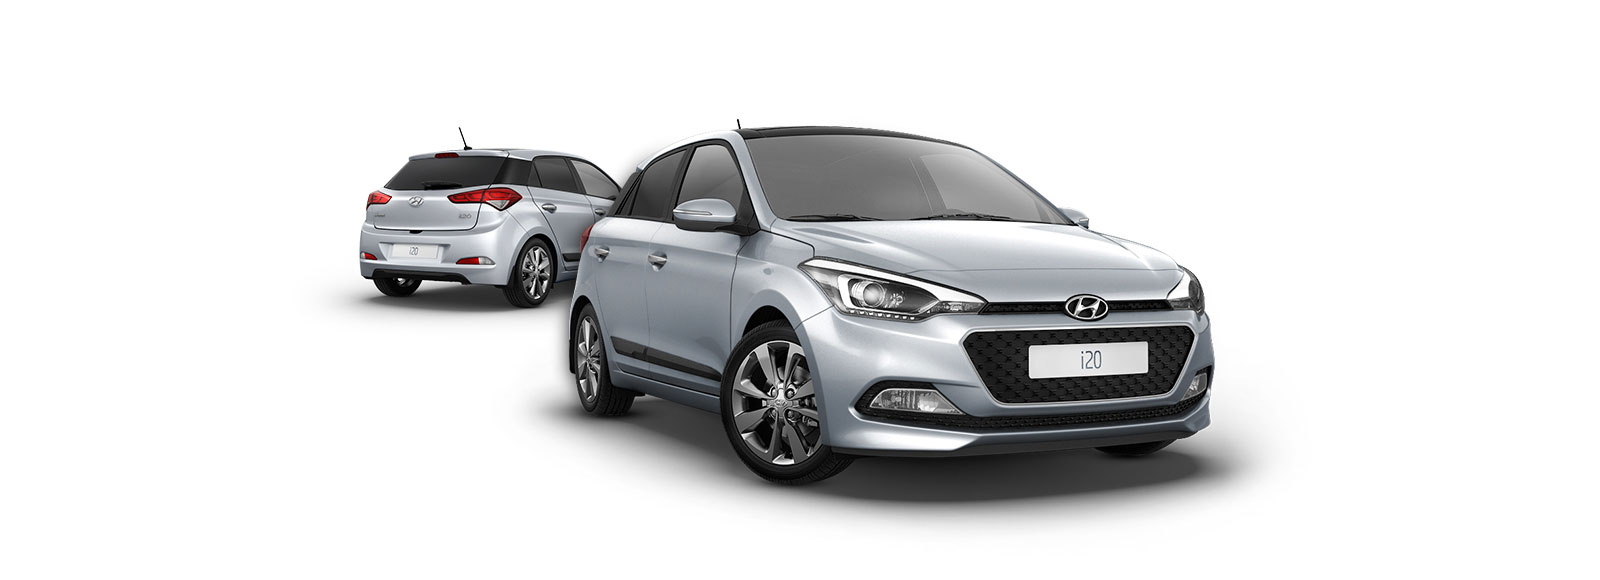 Side front view in front and side rear view of silver i20 at the back